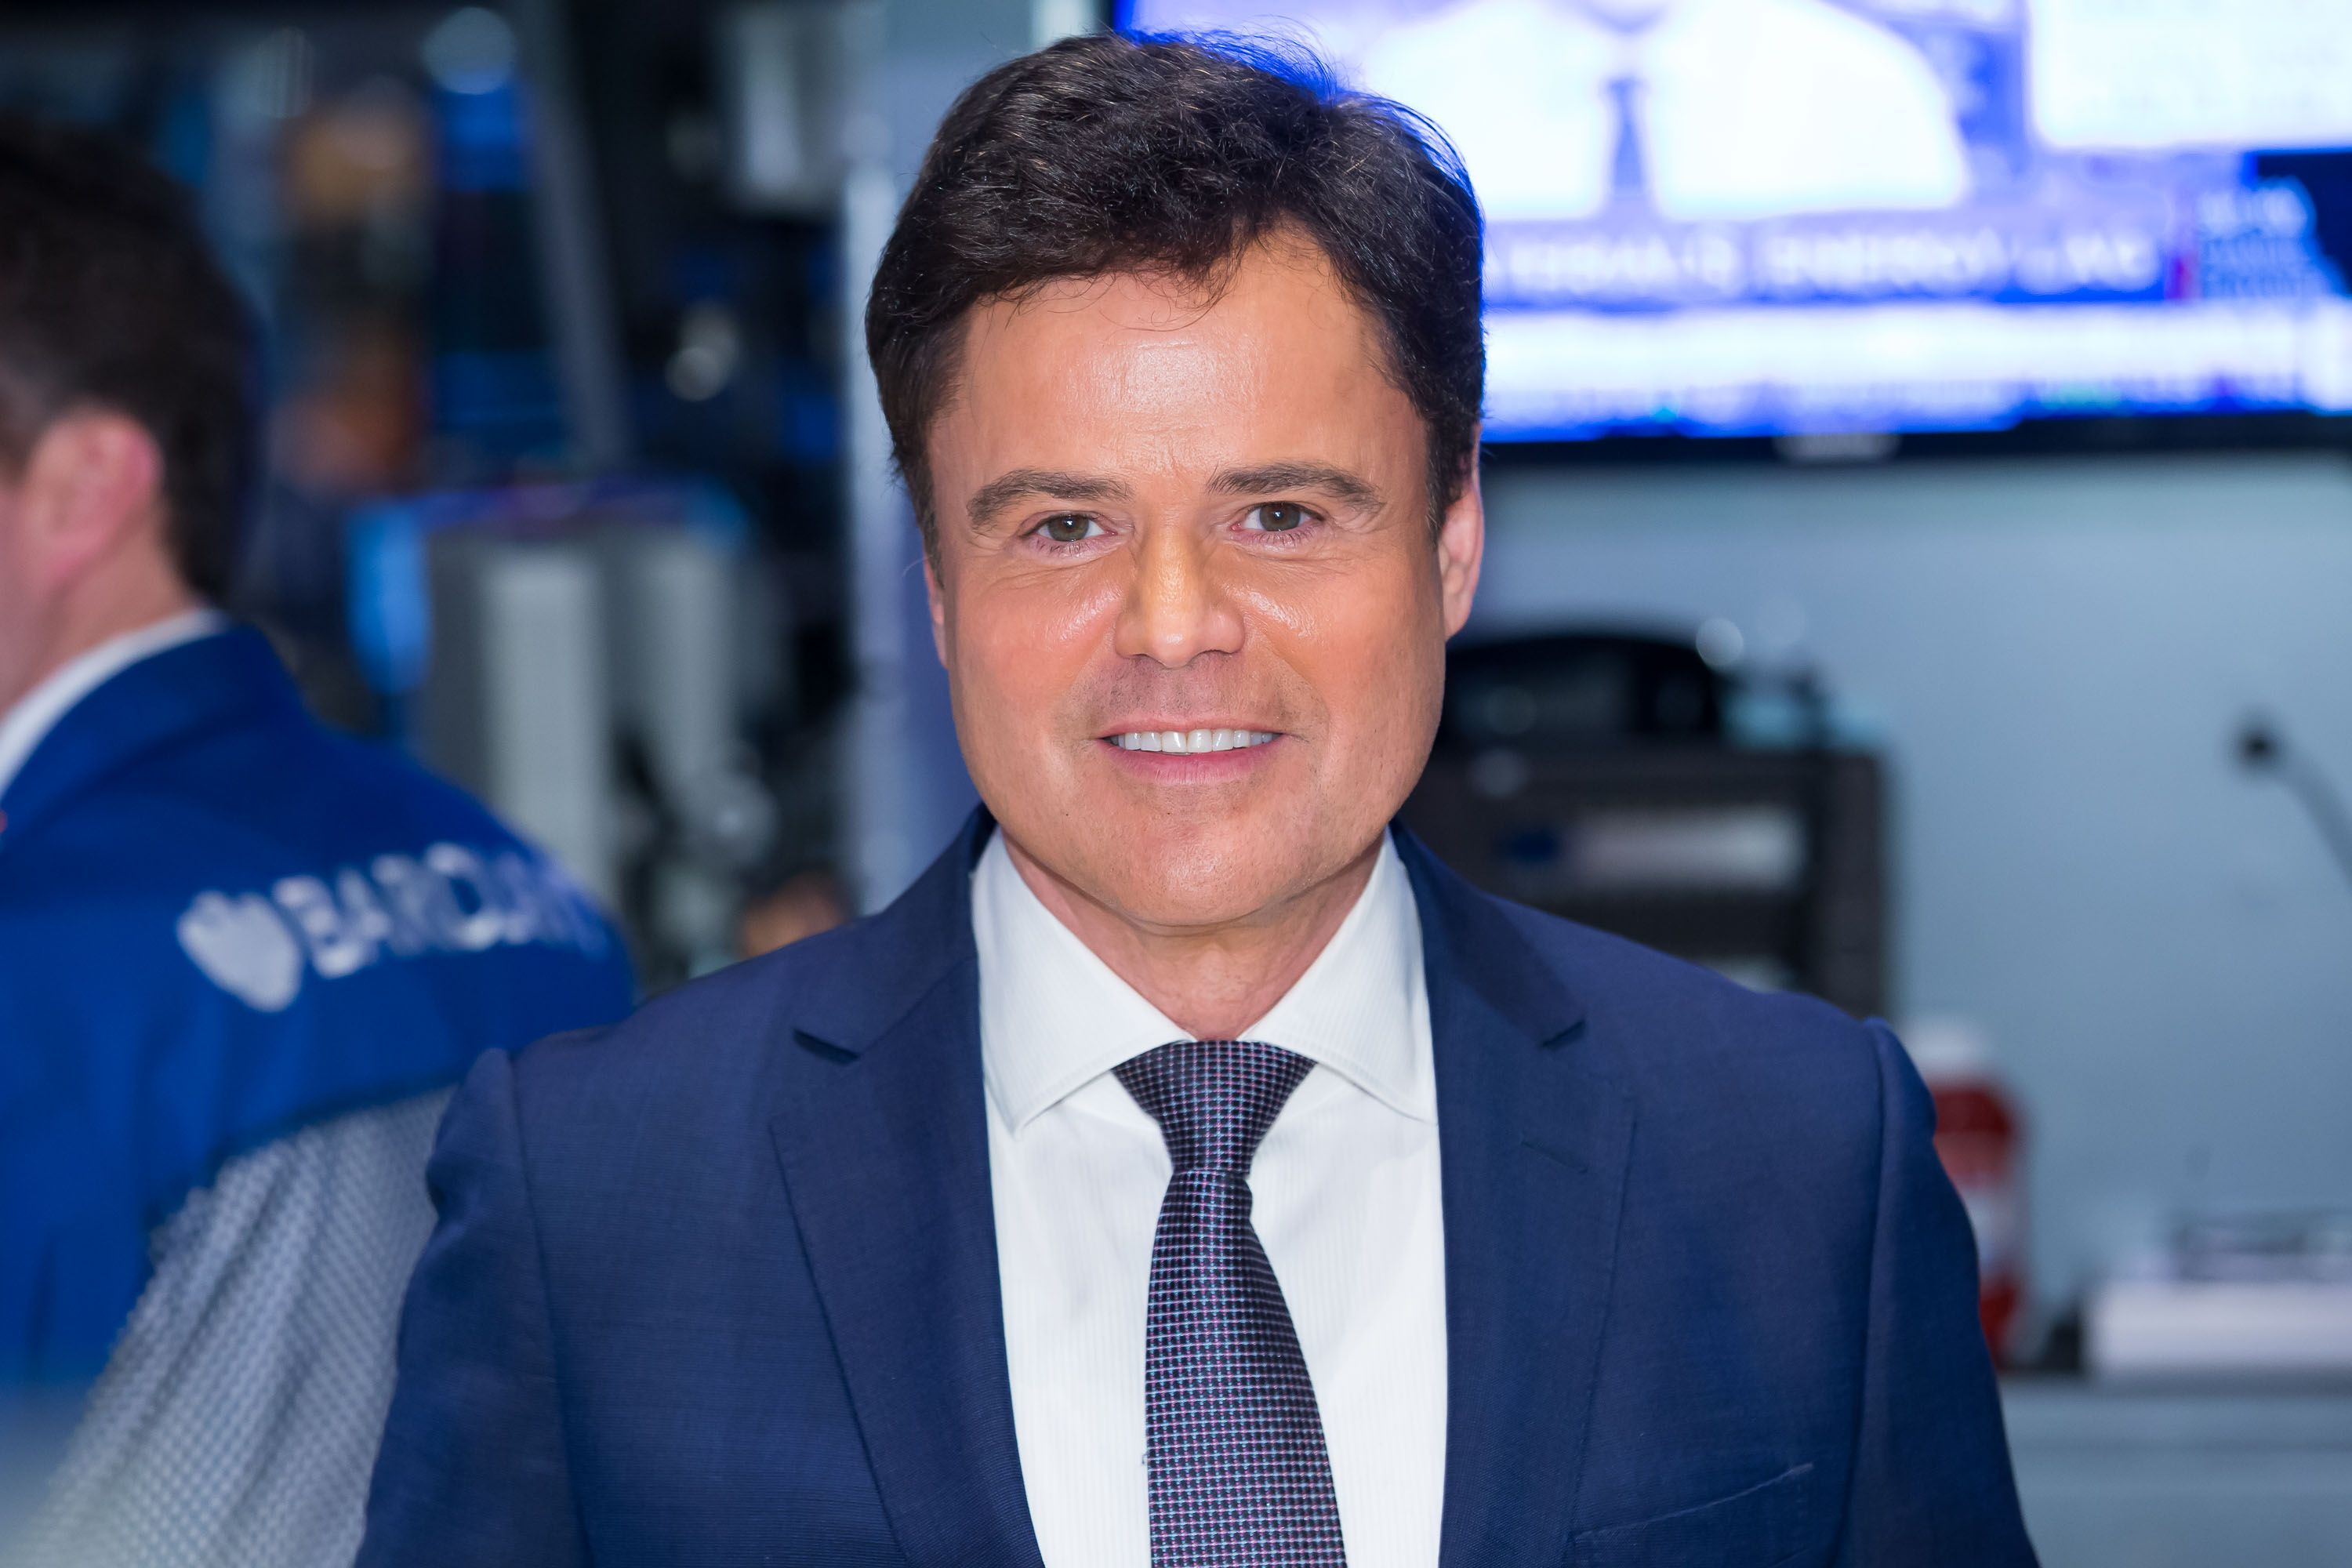 Donny Osmond rang the Closing Bell at New York Stock Exchange on January 13, 2015 | Photo: Getty Images